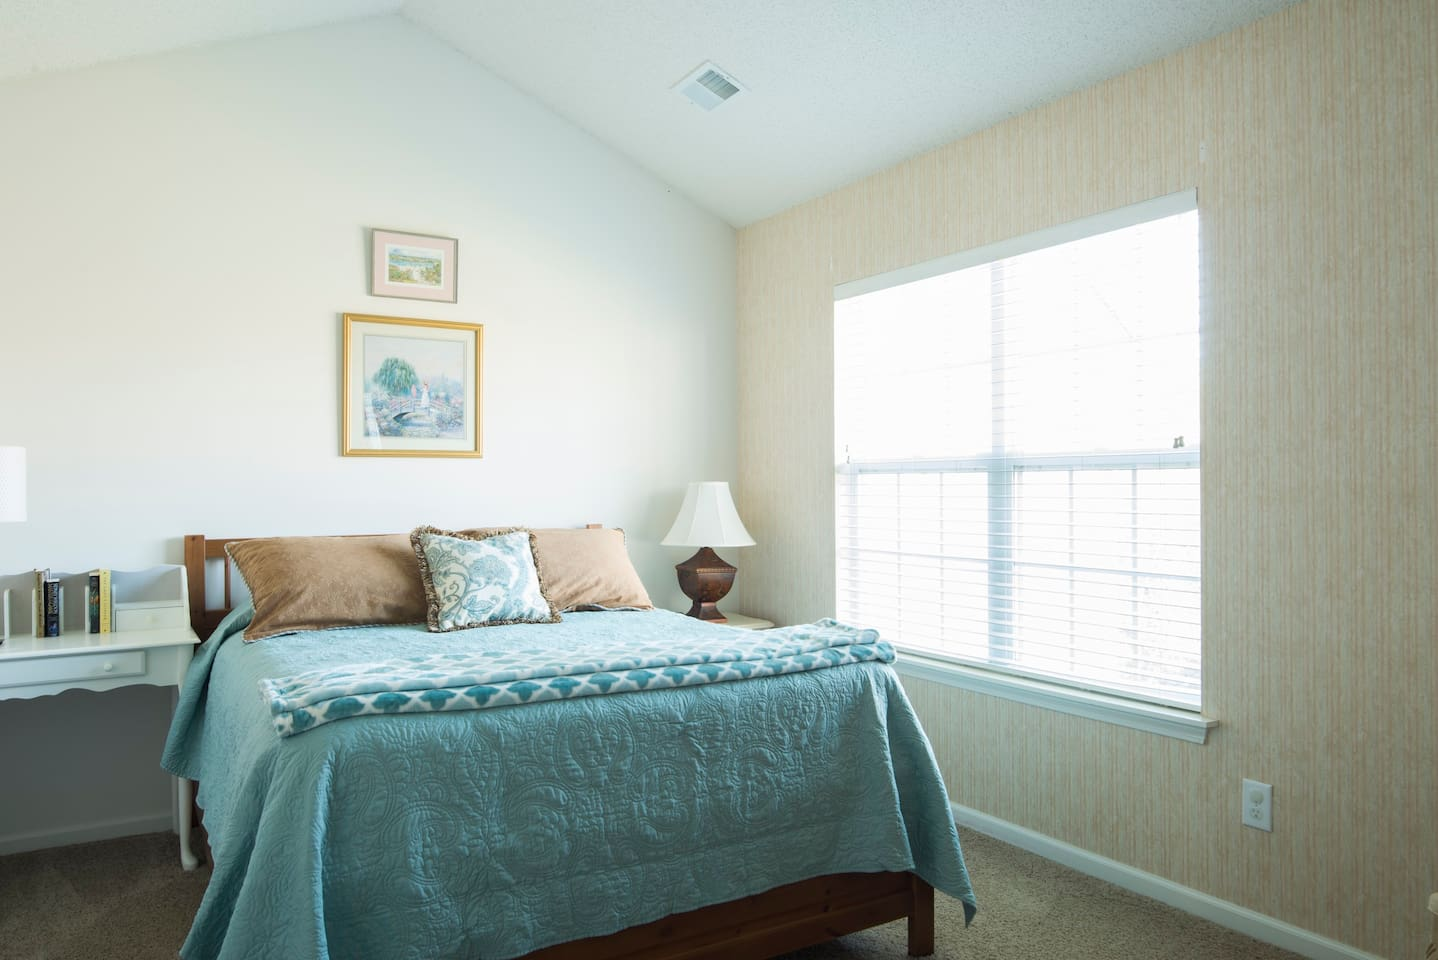 Clean Queen Size Bed with high ceilings